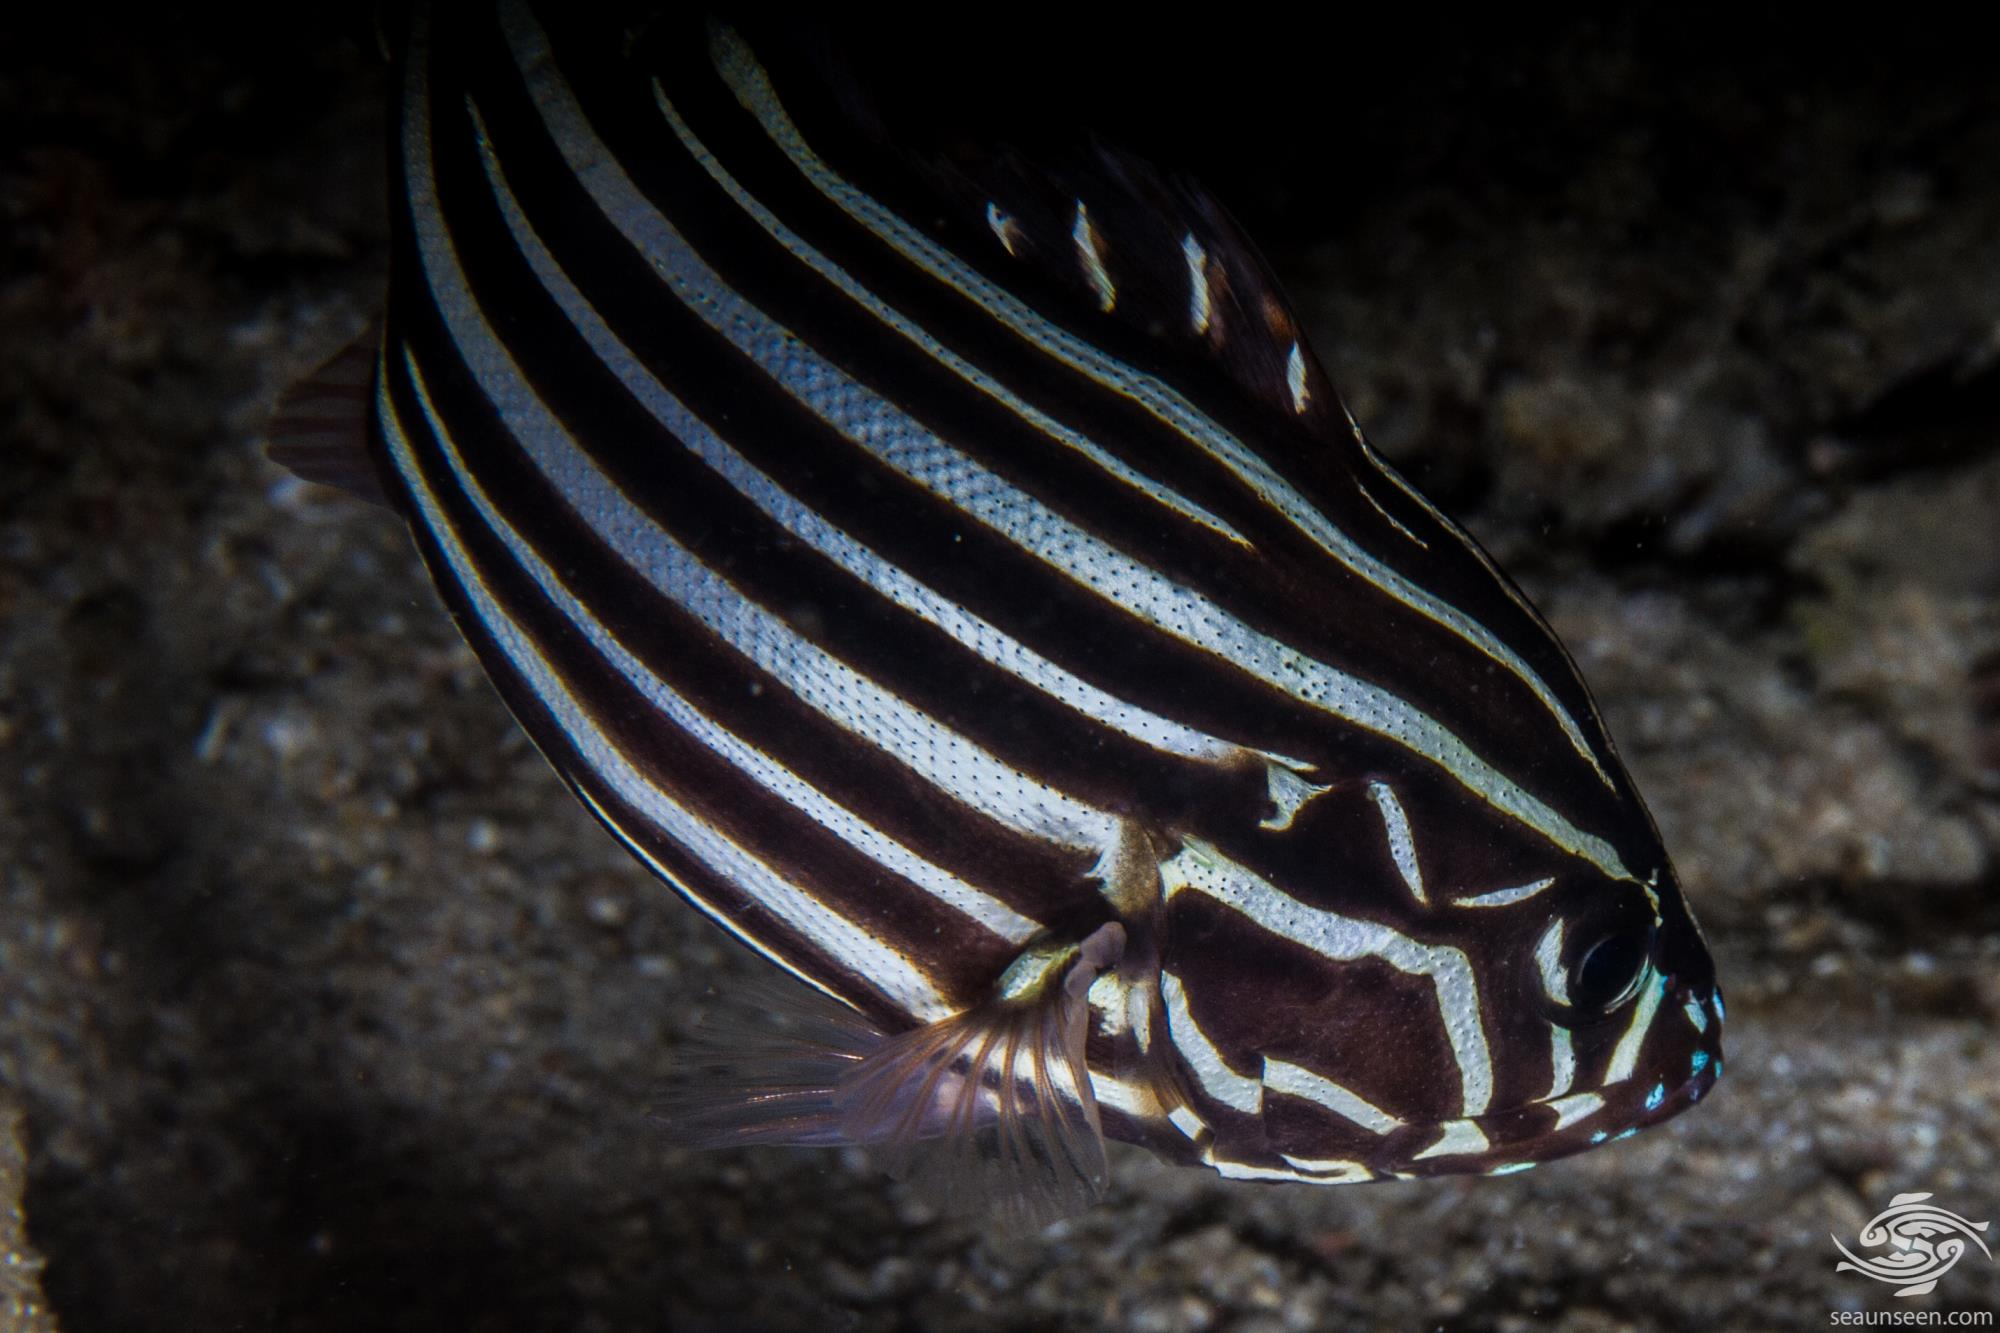 six-lined soapfish (Grammistes sexlineatus) is also known as the goldenstriped soapfish, Pacific goldenstriped bass and skunkfish